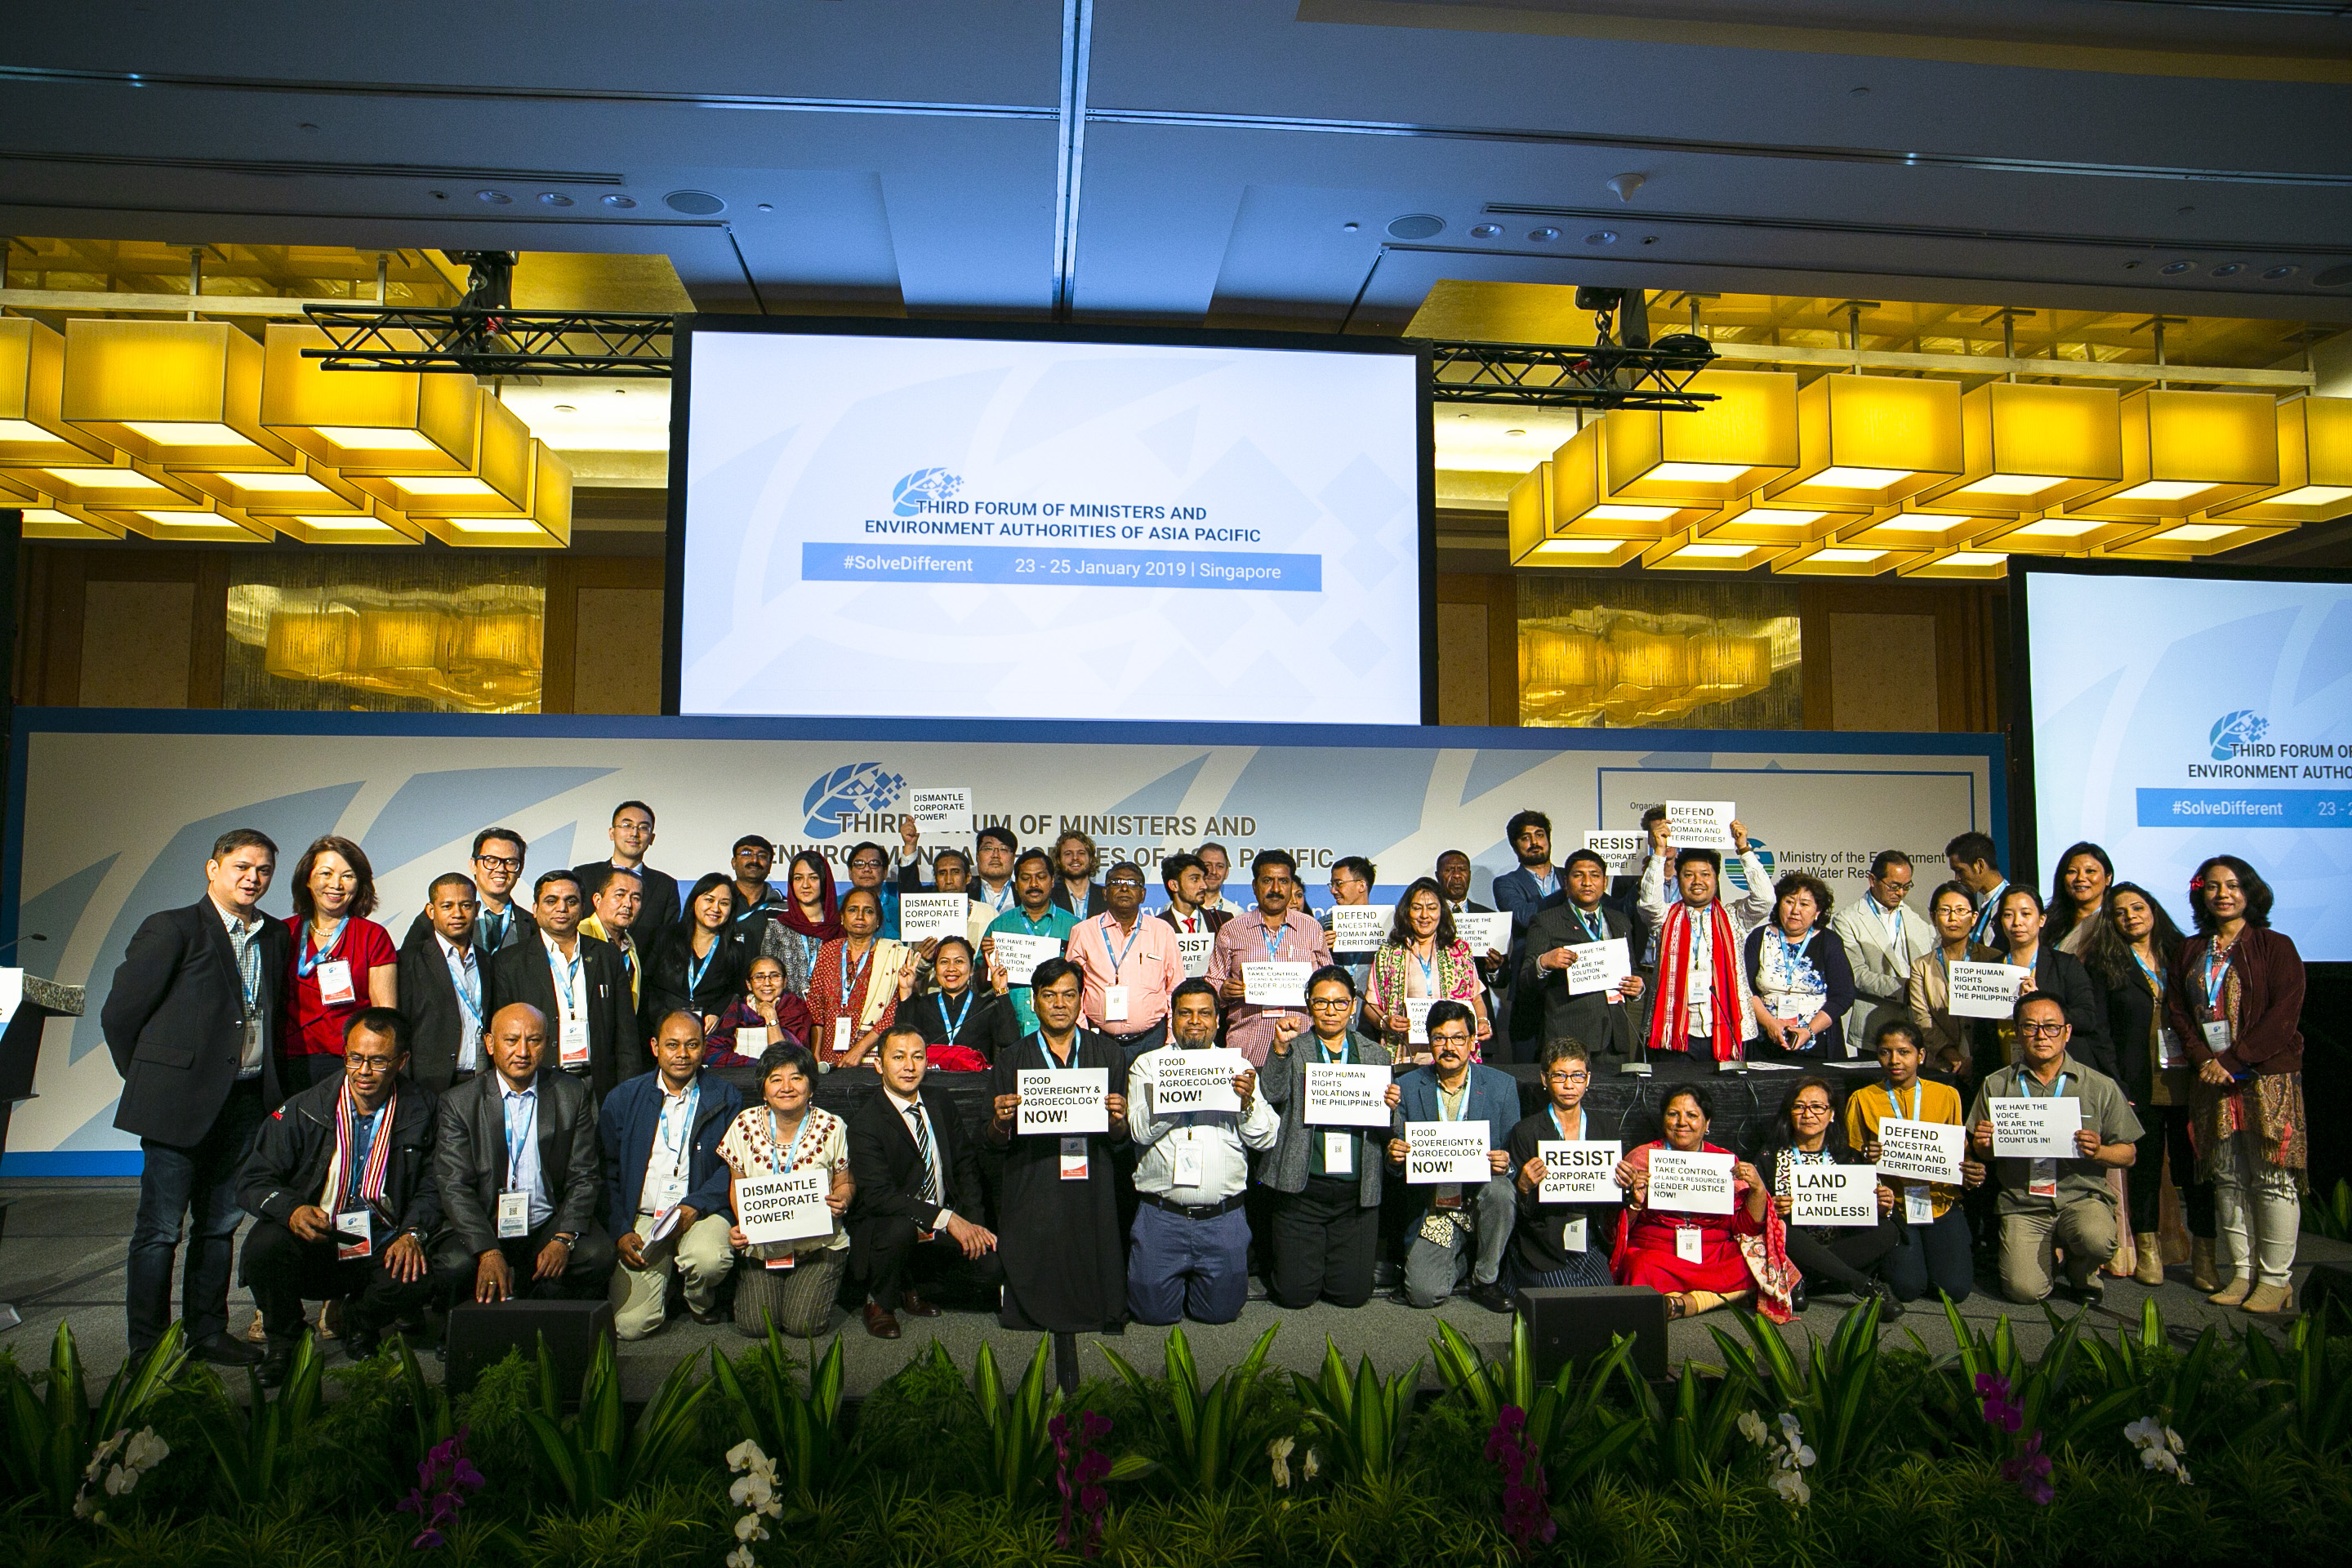 1st Day Highlights of 3rd Forum of Ministers and Environment Authorities of Asia Pacific